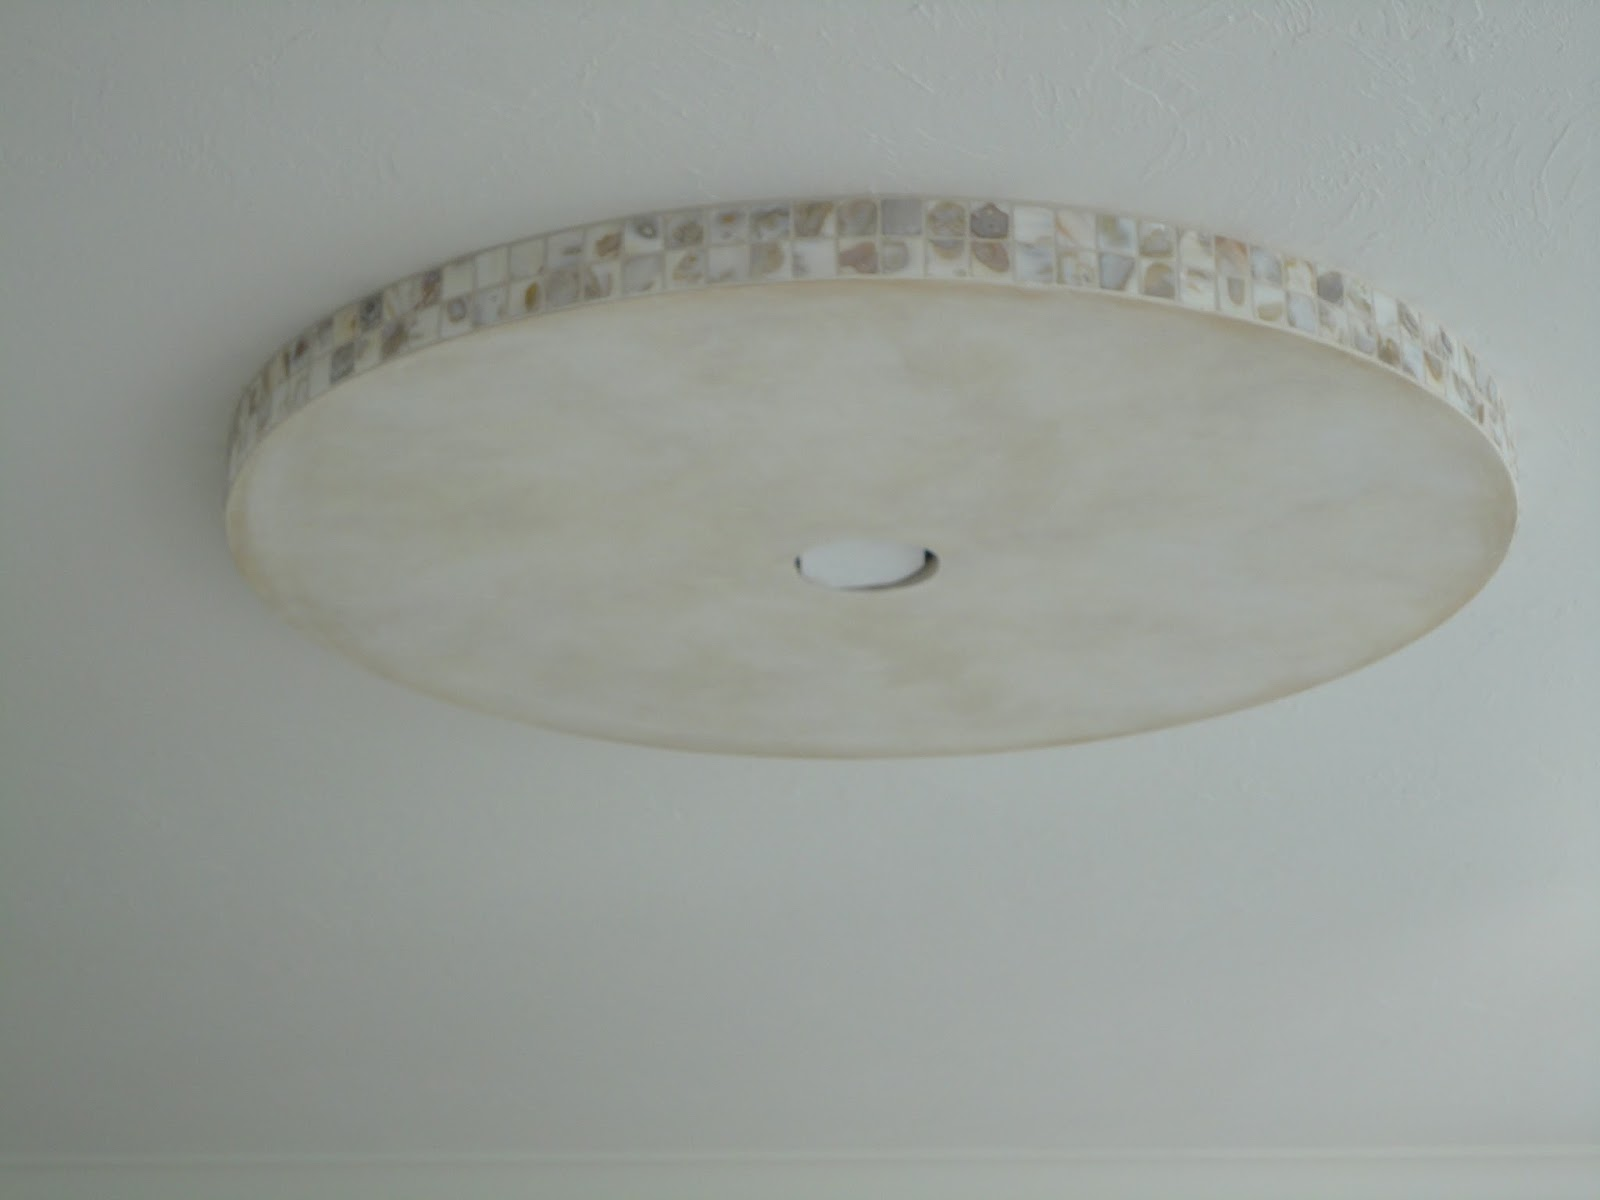 Tile sarasota sarasota tile contractor van osdol marble and tile sarasota tile contractor van osdol marble and tile here is a mosaic shell tile that we installed around a ceiling fan platform the tile matches the tile dailygadgetfo Gallery